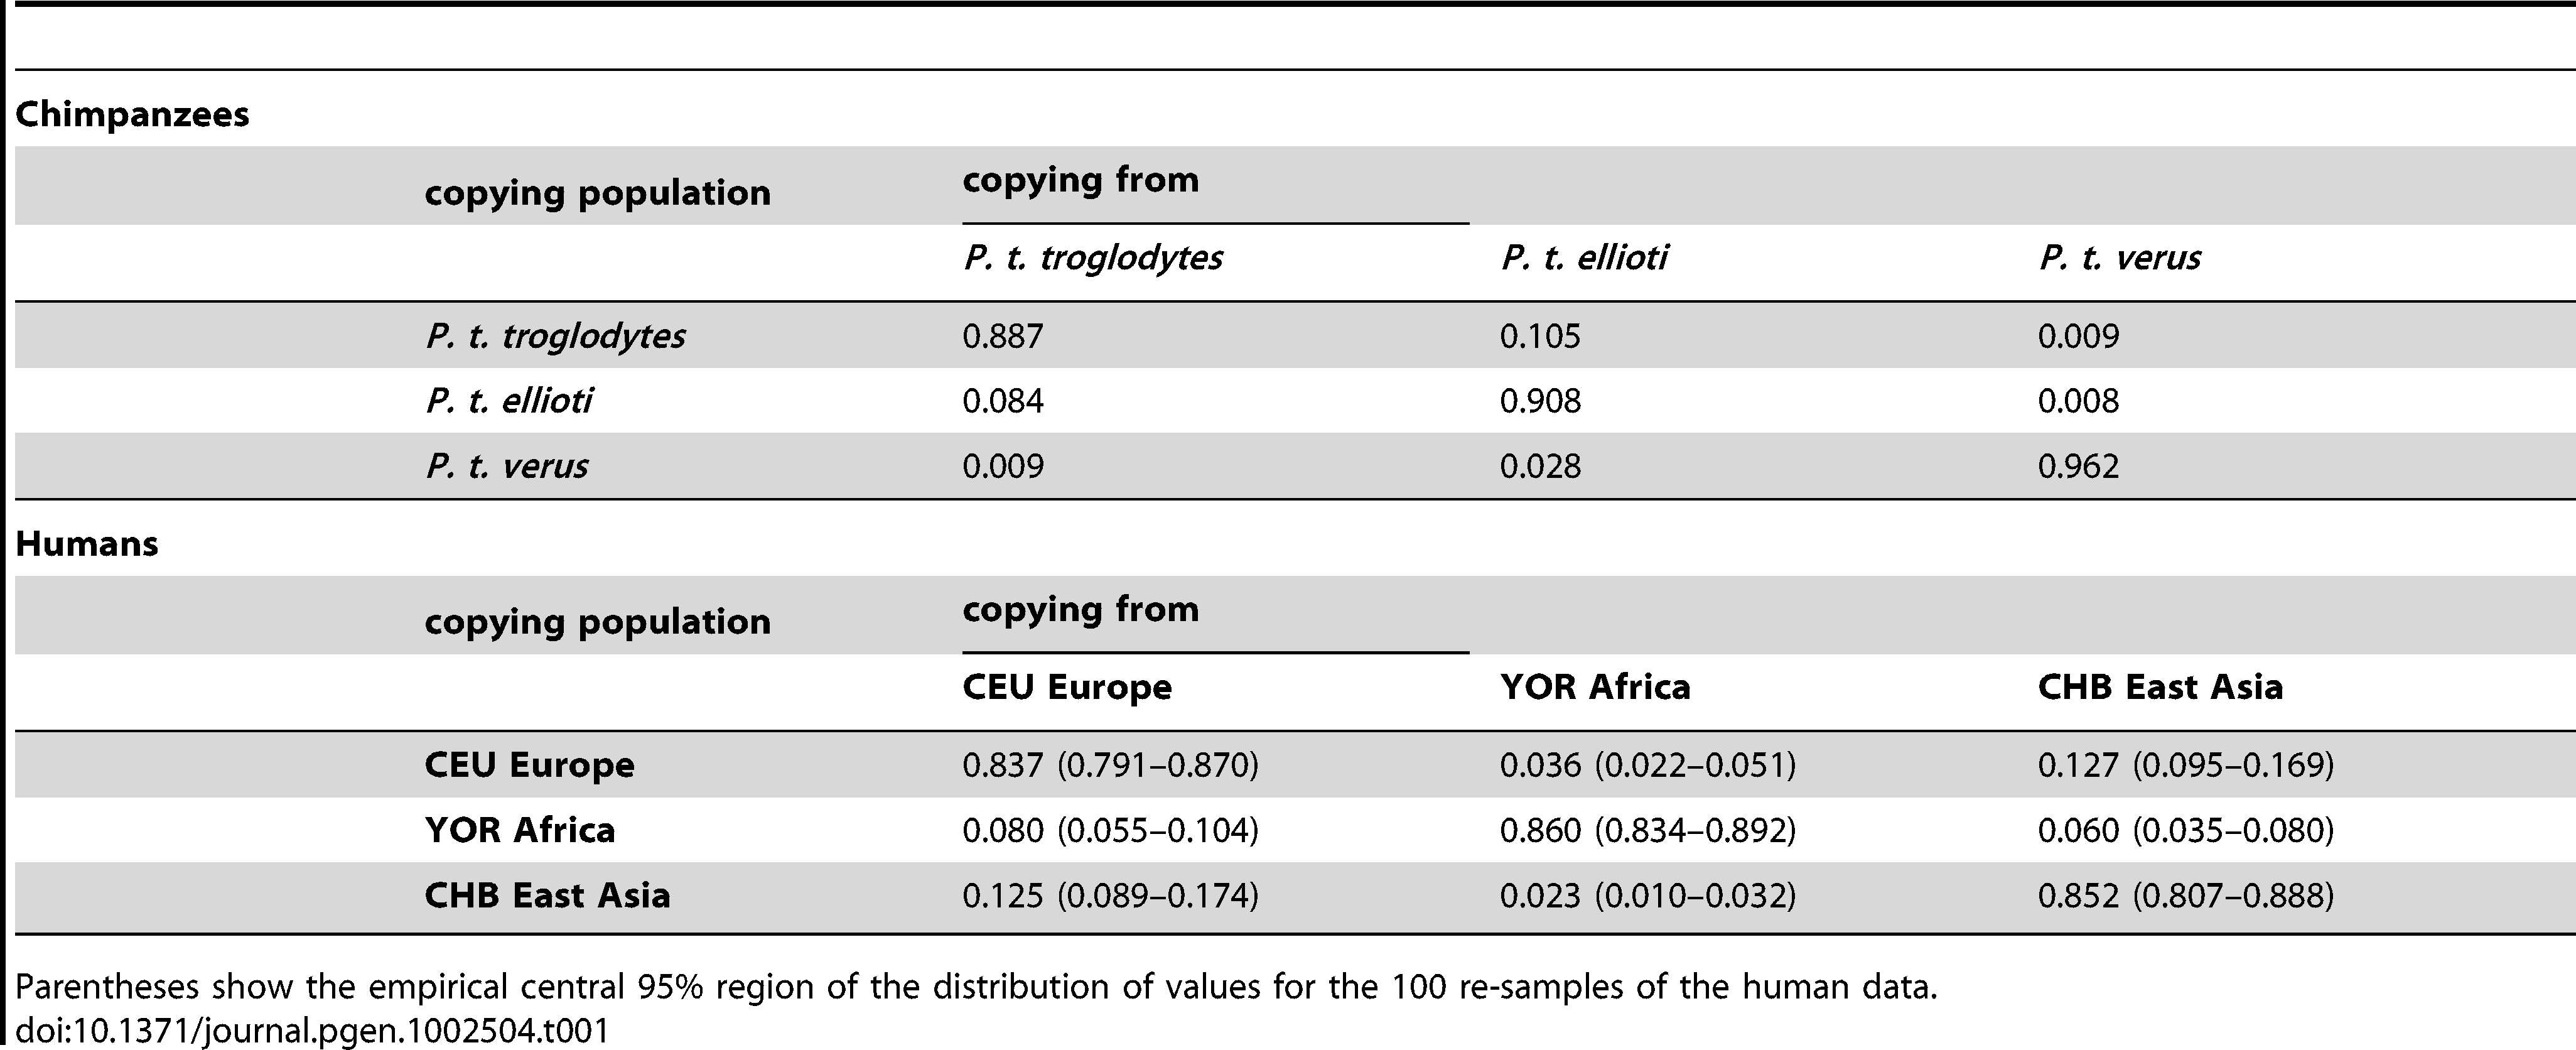 Estimates of the proportion of the sampled genomic regions for which the most closely related haplotype comes from each study population, for chimpanzees and humans.